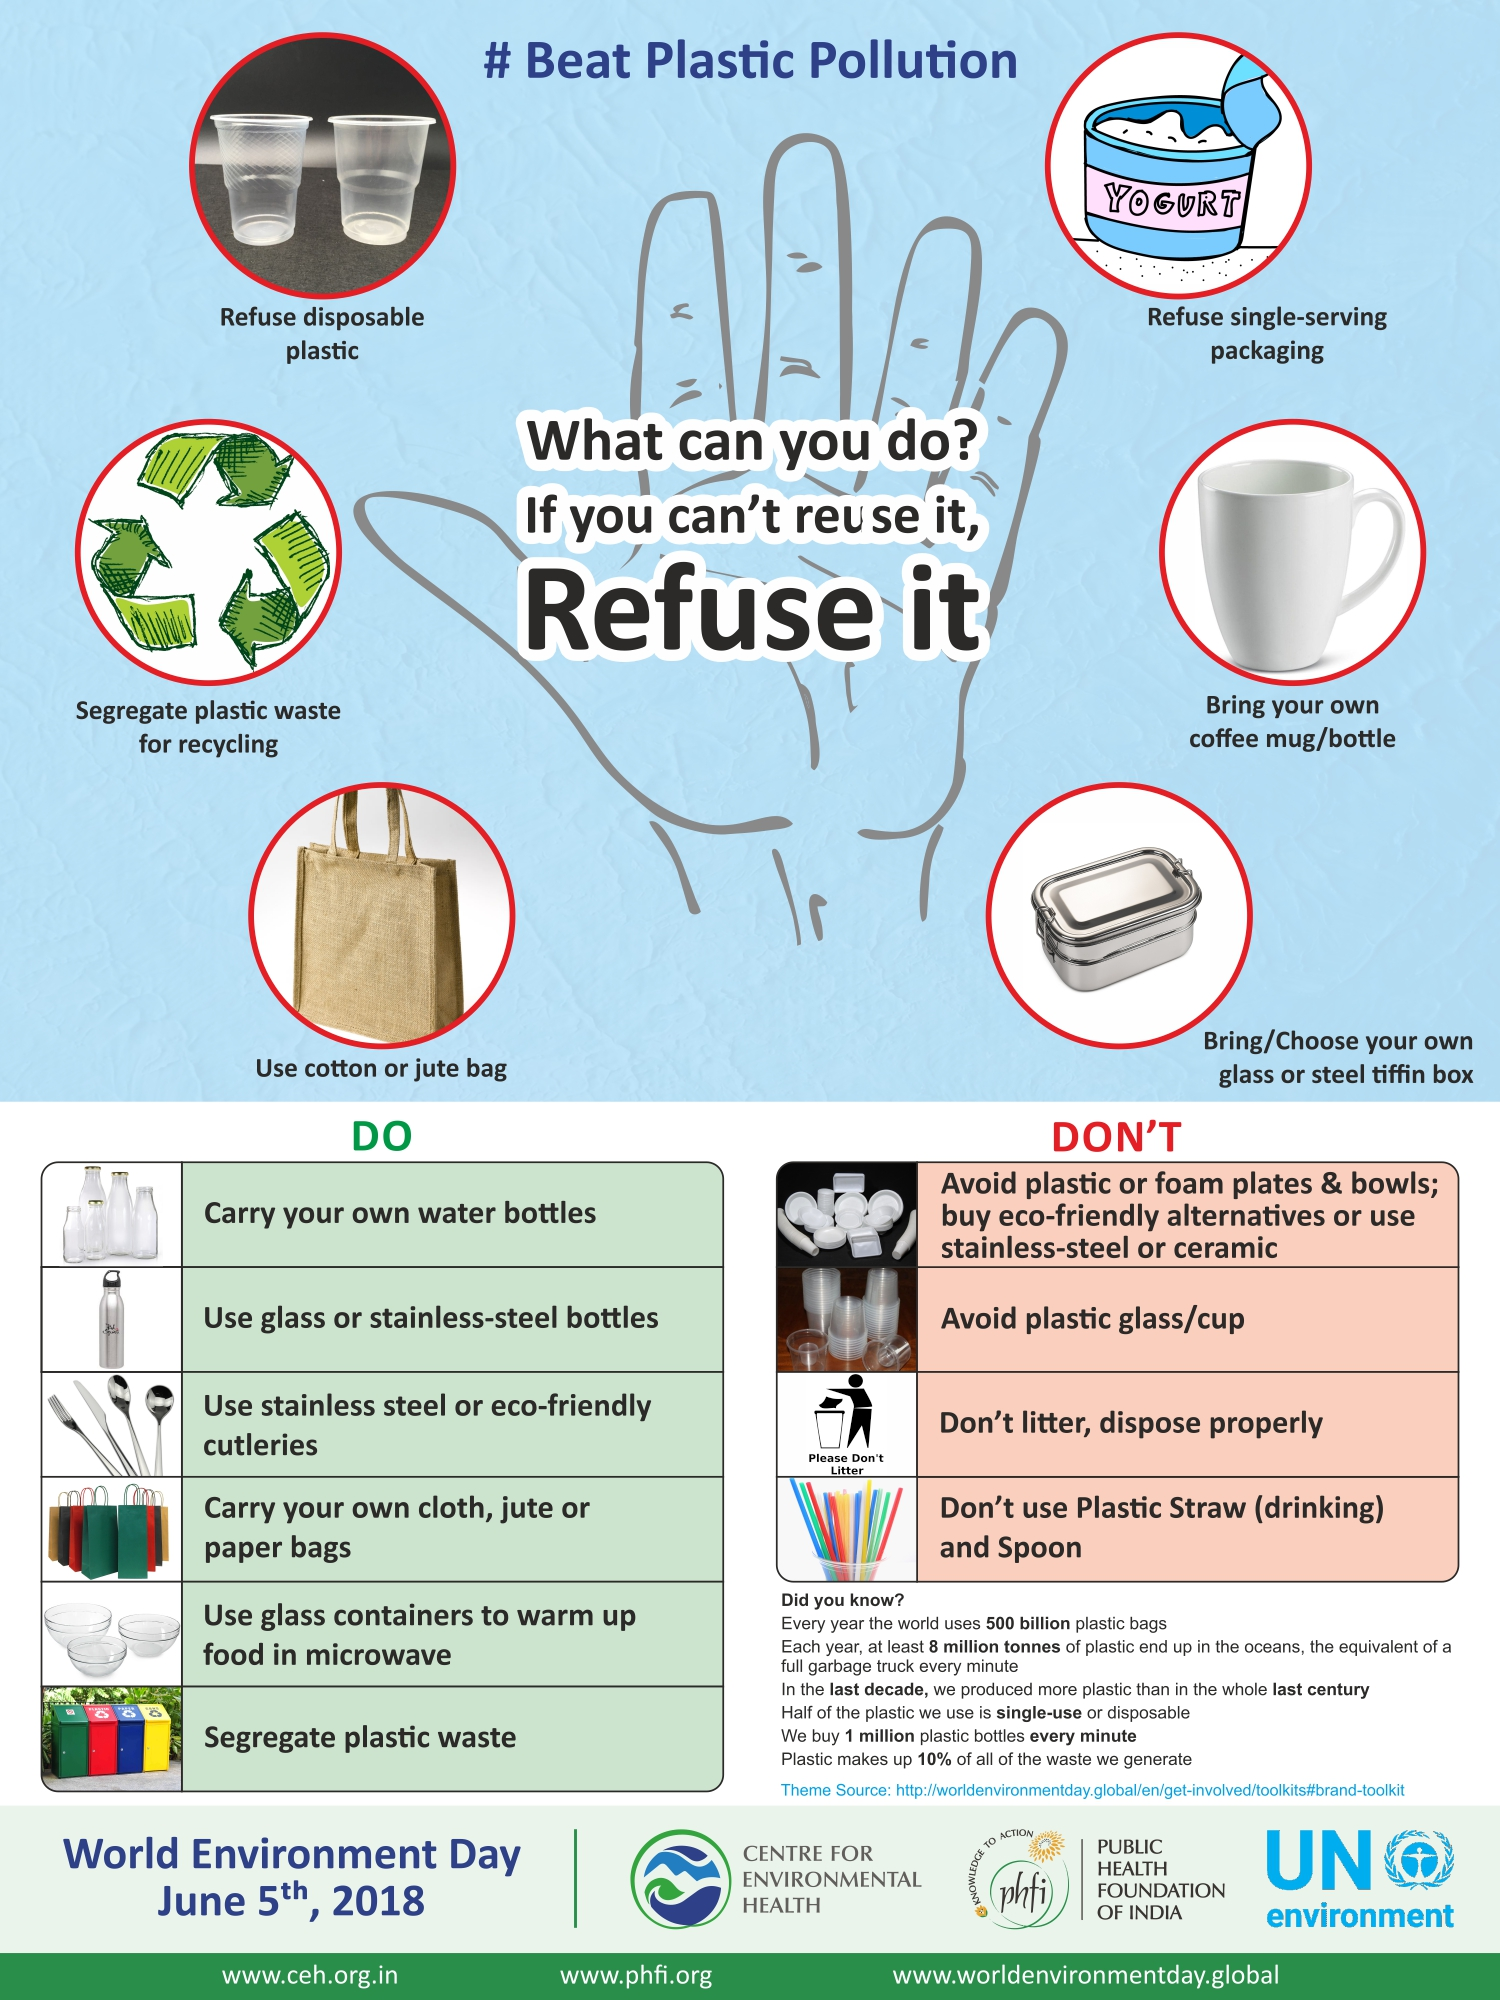 What can You do? If you can't reuse it, Refuse it.